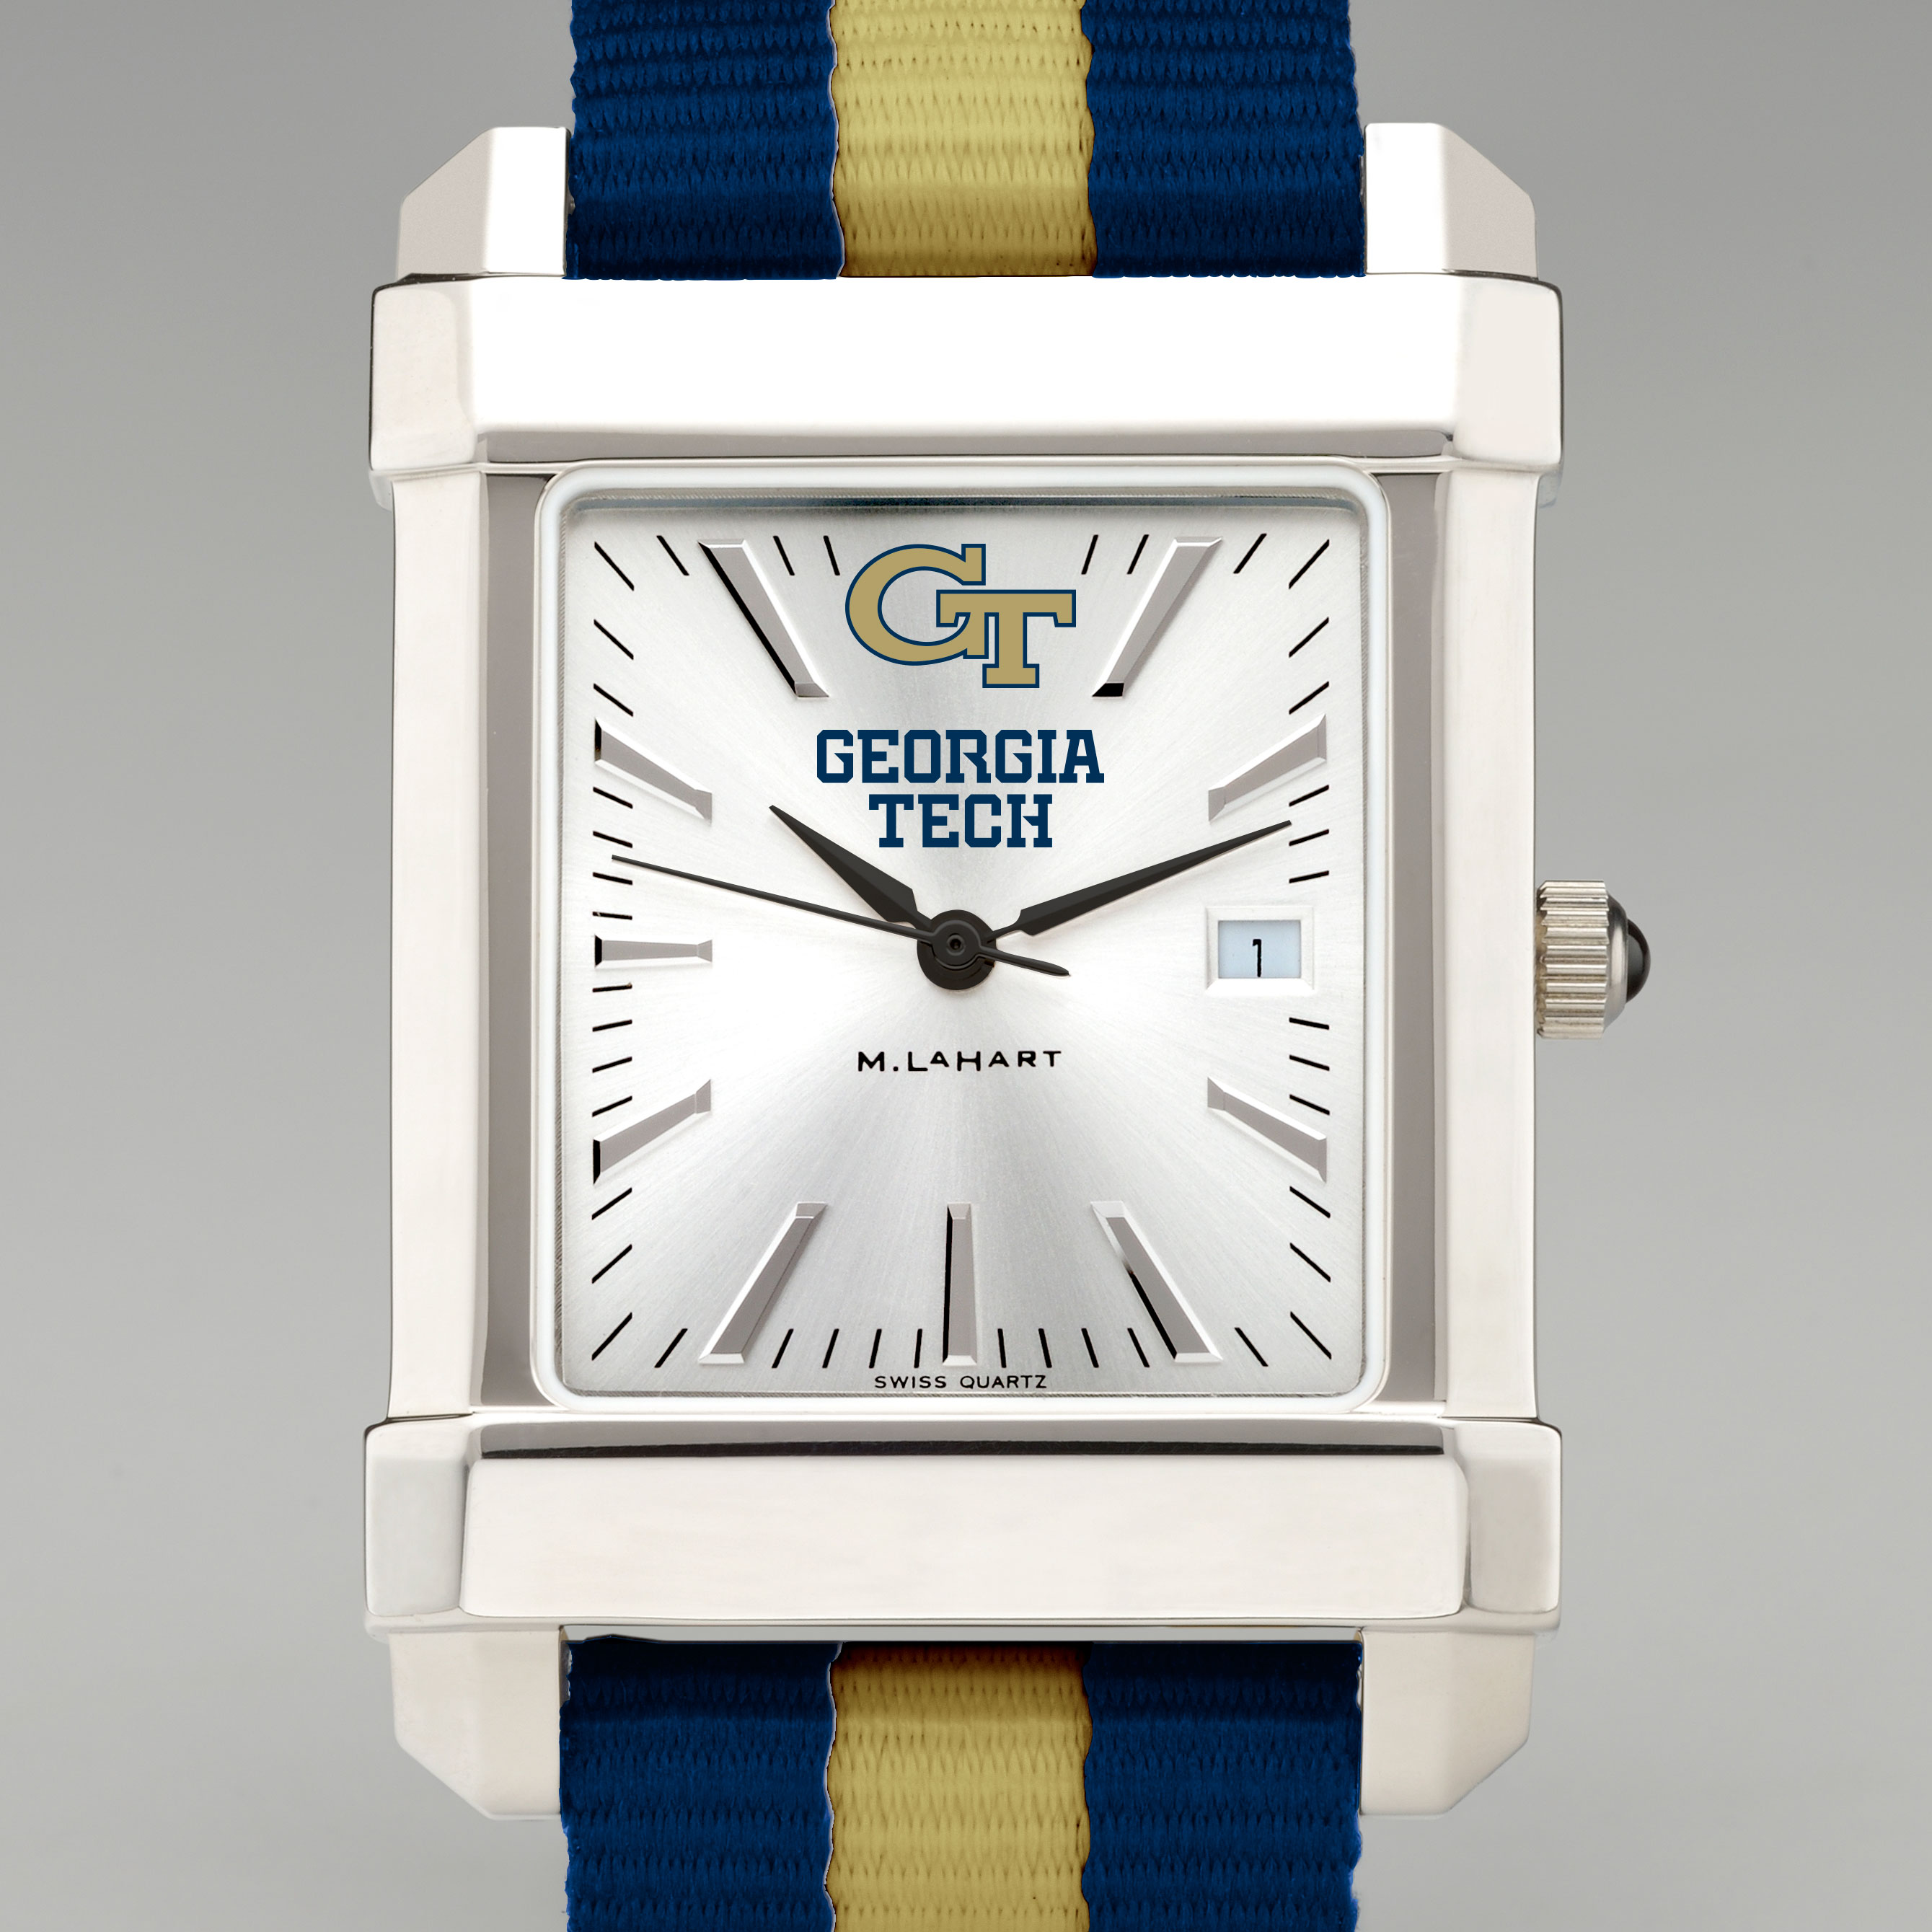 Georgia Tech Collegiate Watch with NATO Strap for Men - Image 1